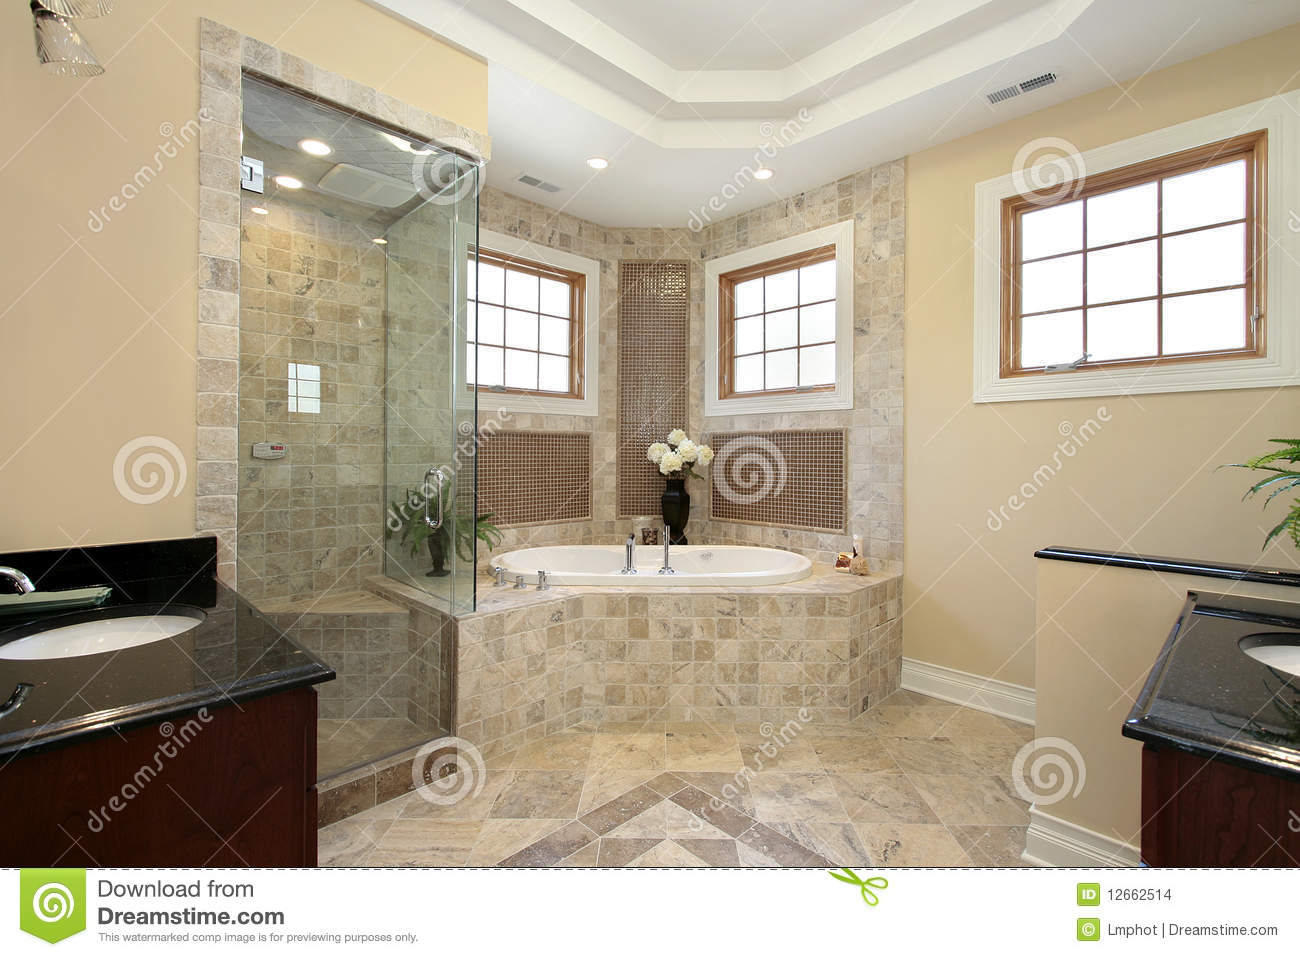 Master bath in new construction home stock images image for Pictures of master bathrooms in new homes